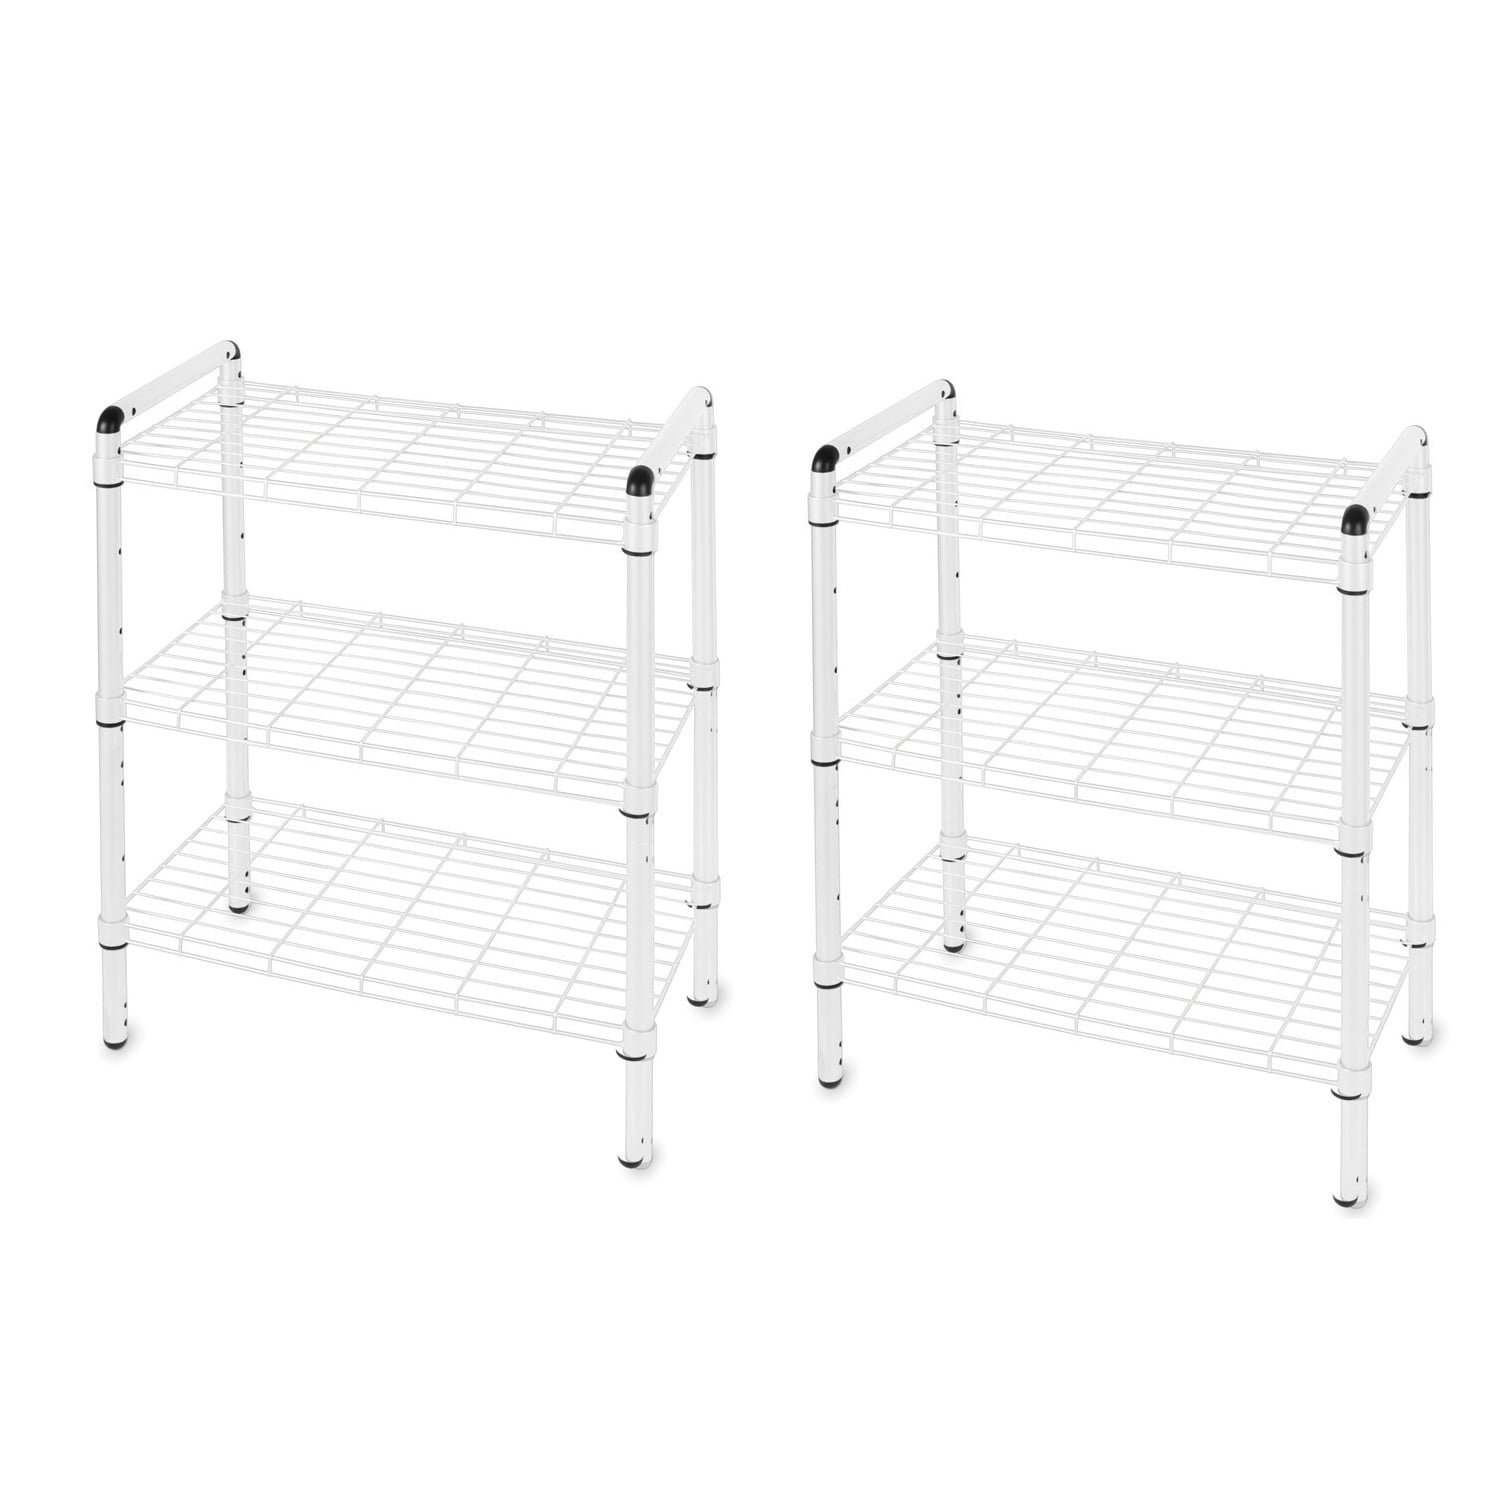 The Art of Storage White Steel 3-tier Quick Rack (Set of 2) by The Art of Storage (Image #4)